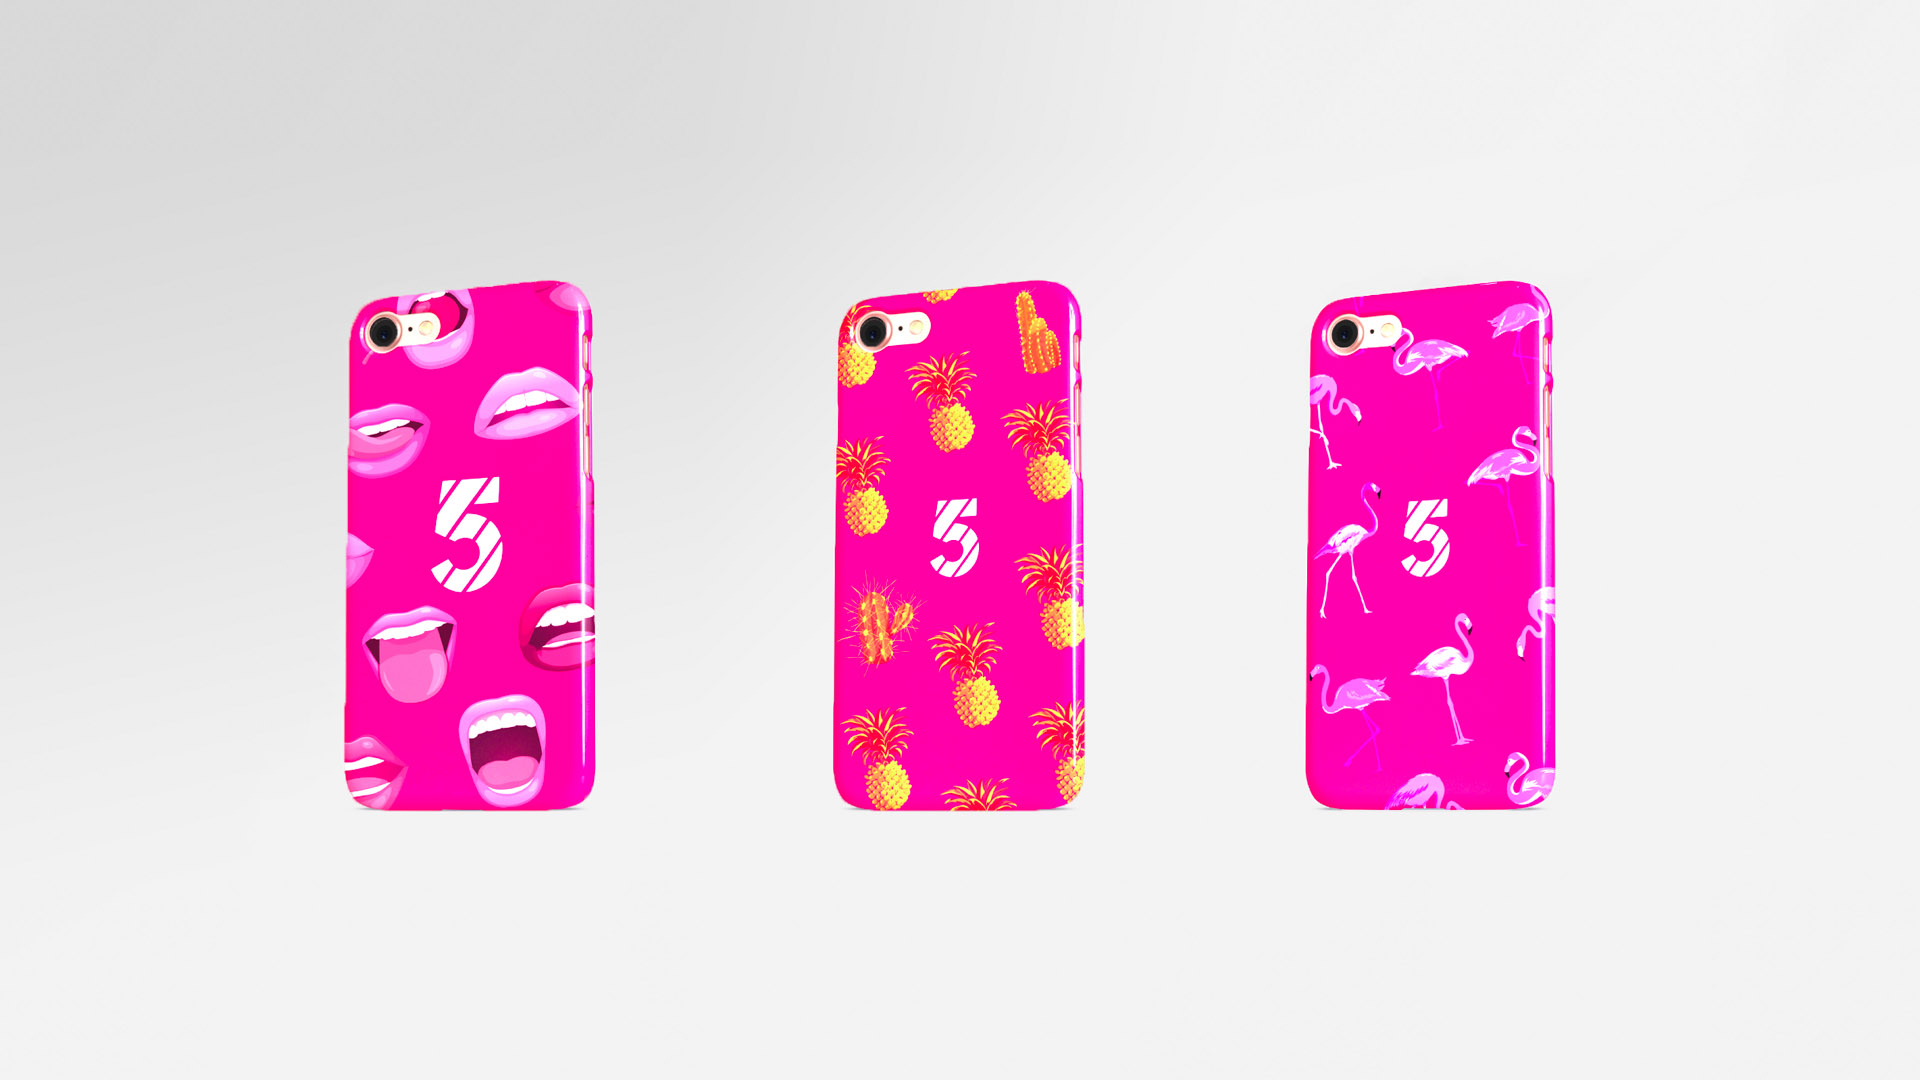 SBS VIJF Phone cases